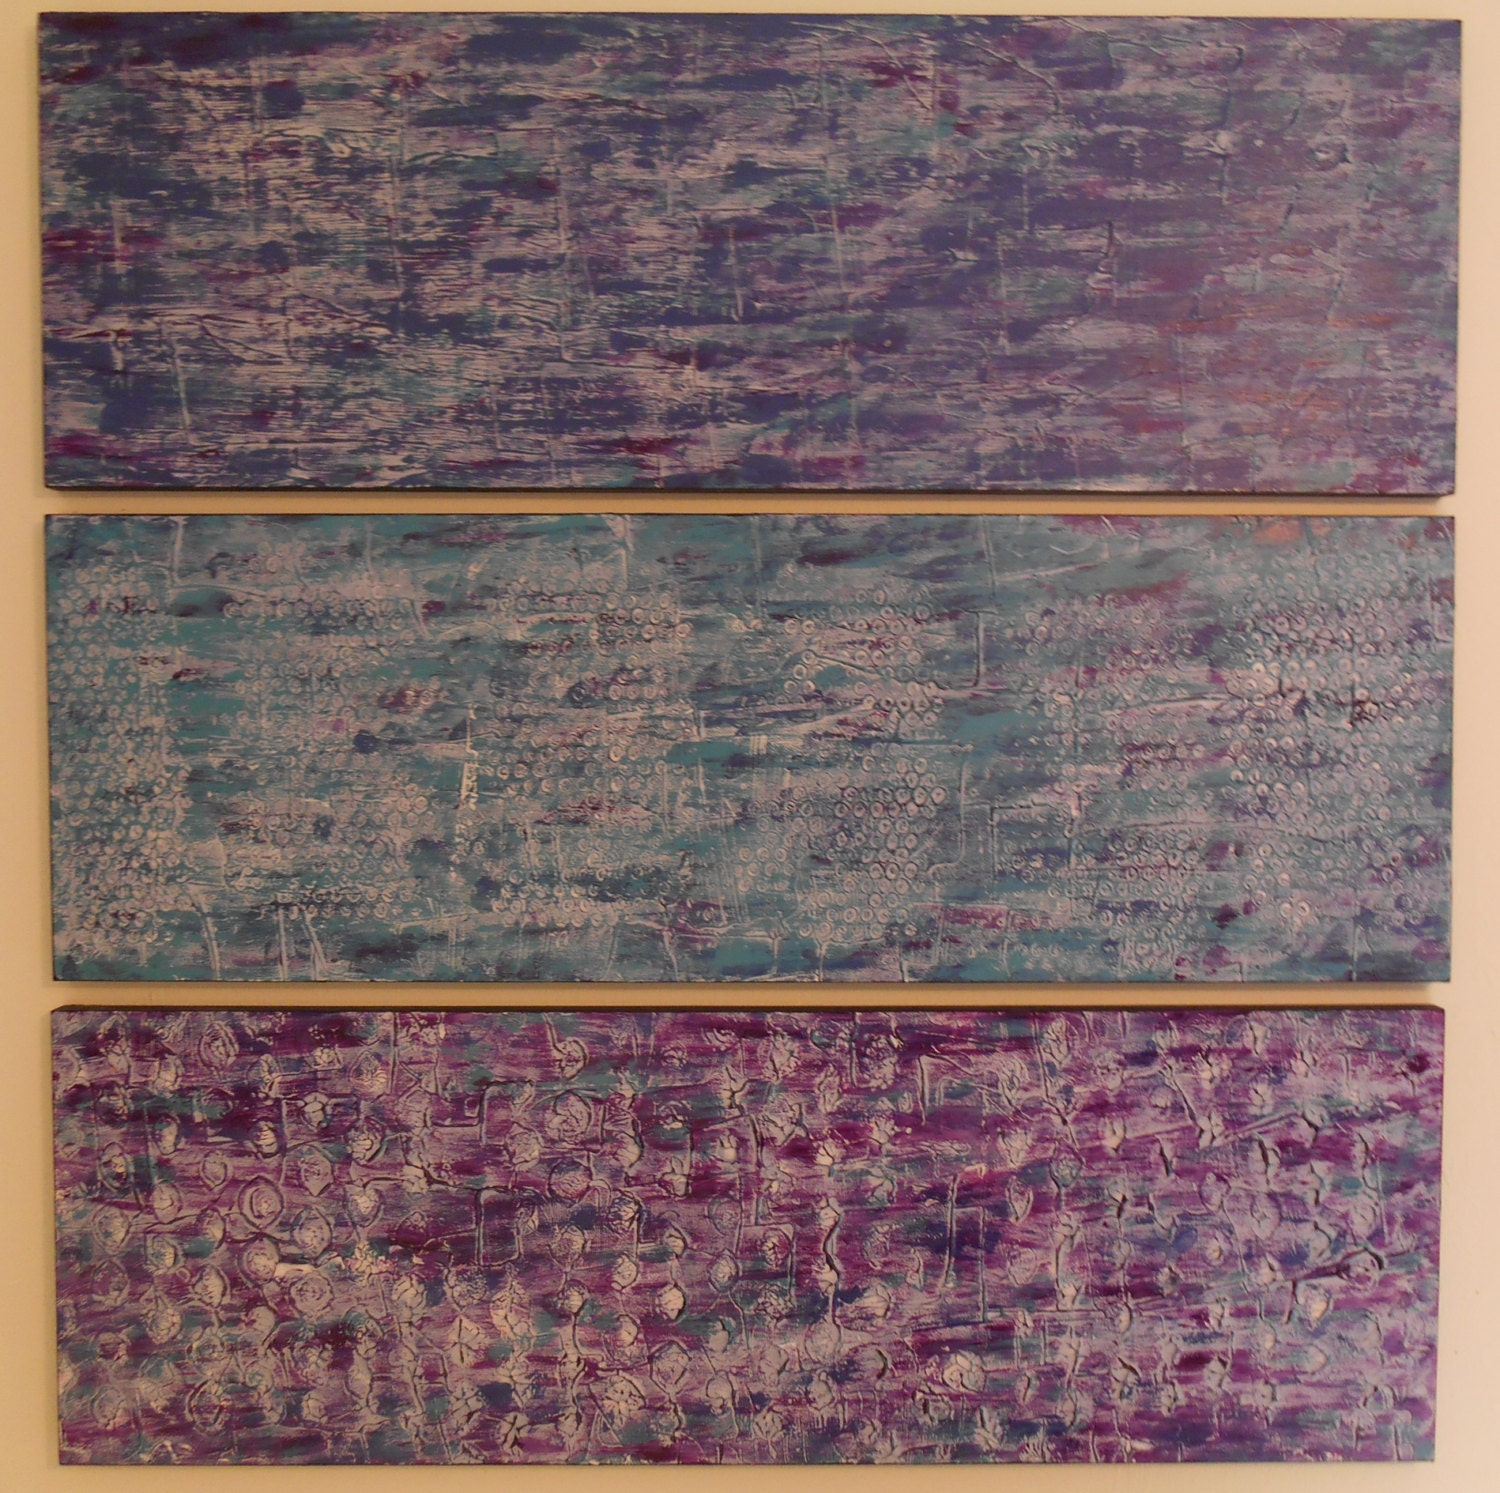 Wood Wall Sculpture - Large Abstract Paintings - Abstract Wall Art - Multi Panel Art - Teal Violet Purple Paintings - Large Wall Art  sc 1 st  Patty Evans Texture Paintings & Wood Wall Sculpture - Large Abstract Paintings - Abstract Wall Art ...